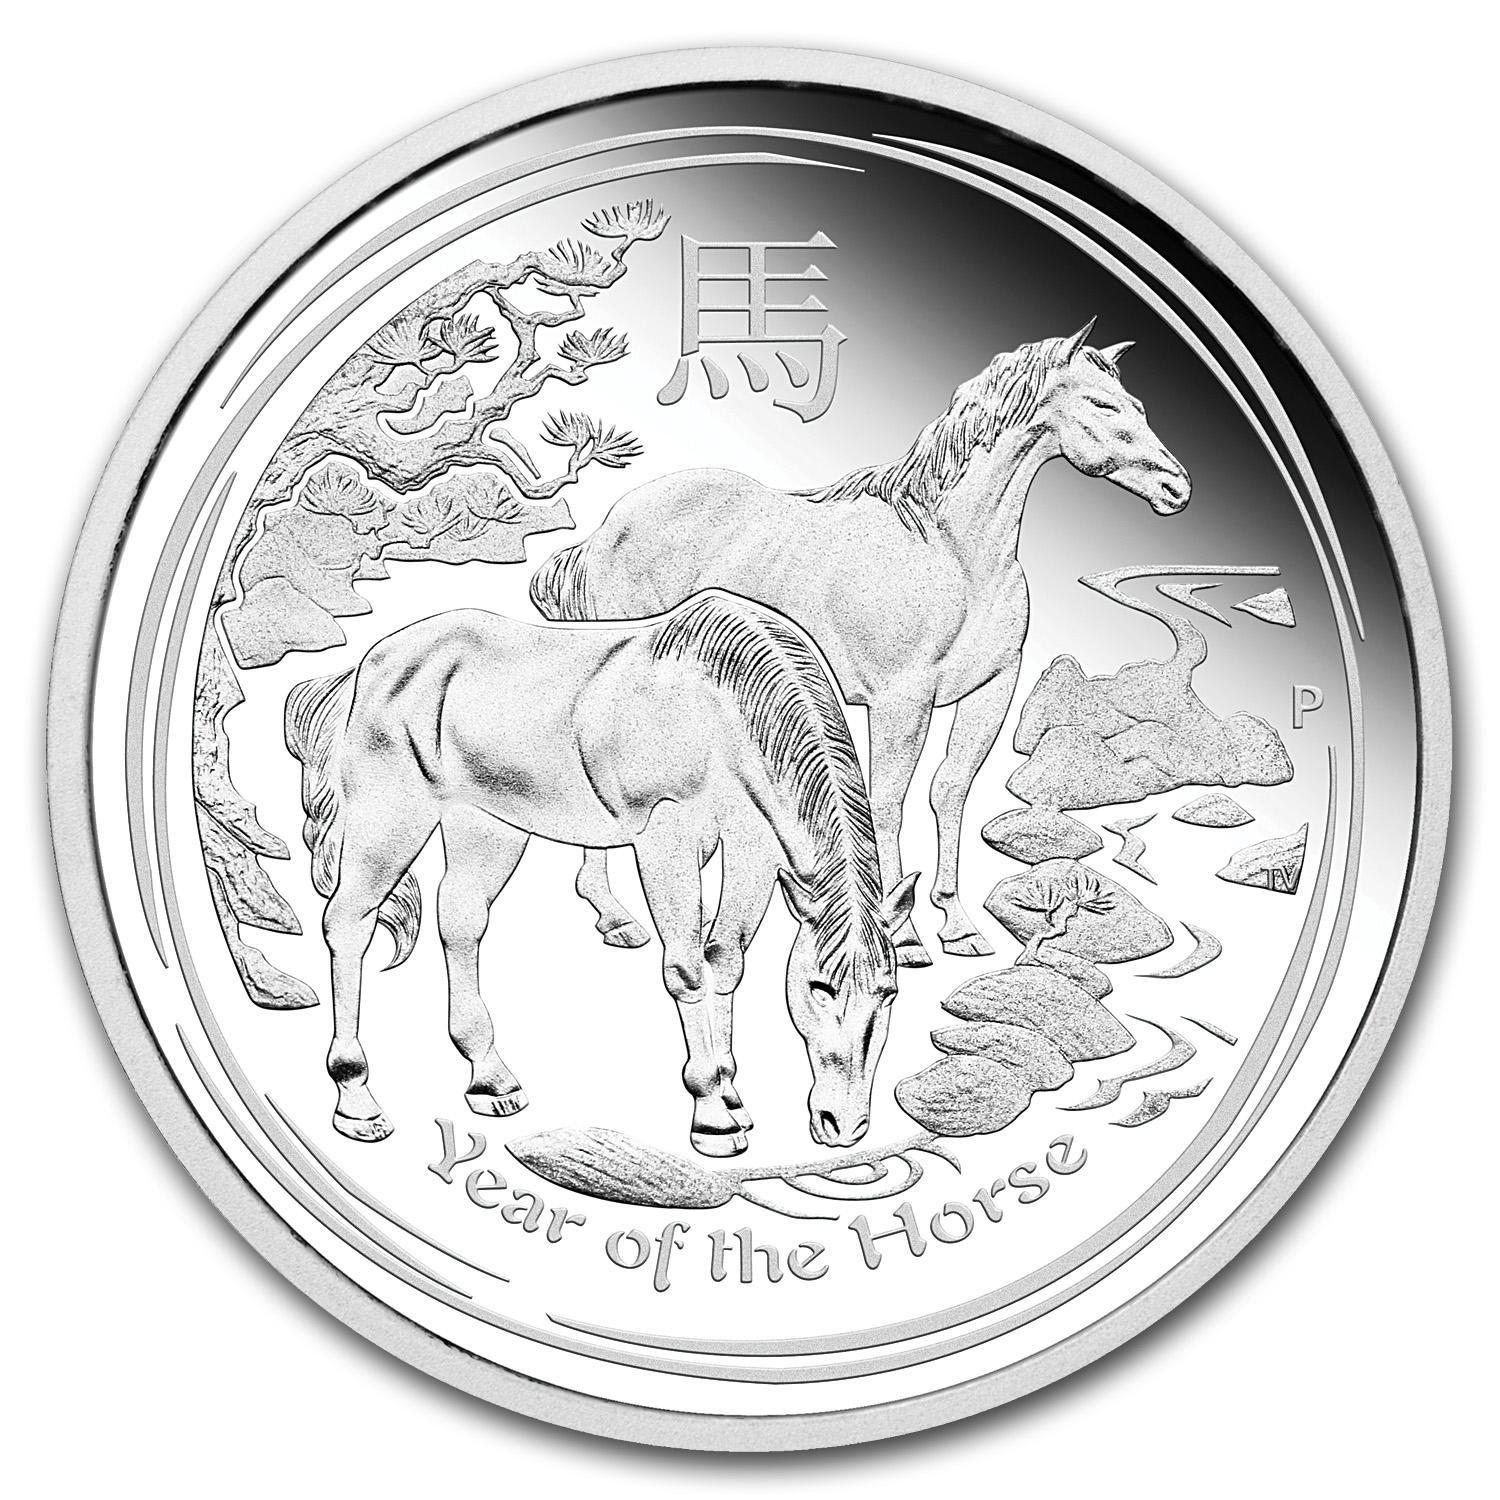 2014 Australia 1 kilo Silver Year of the Horse Proof (SII)